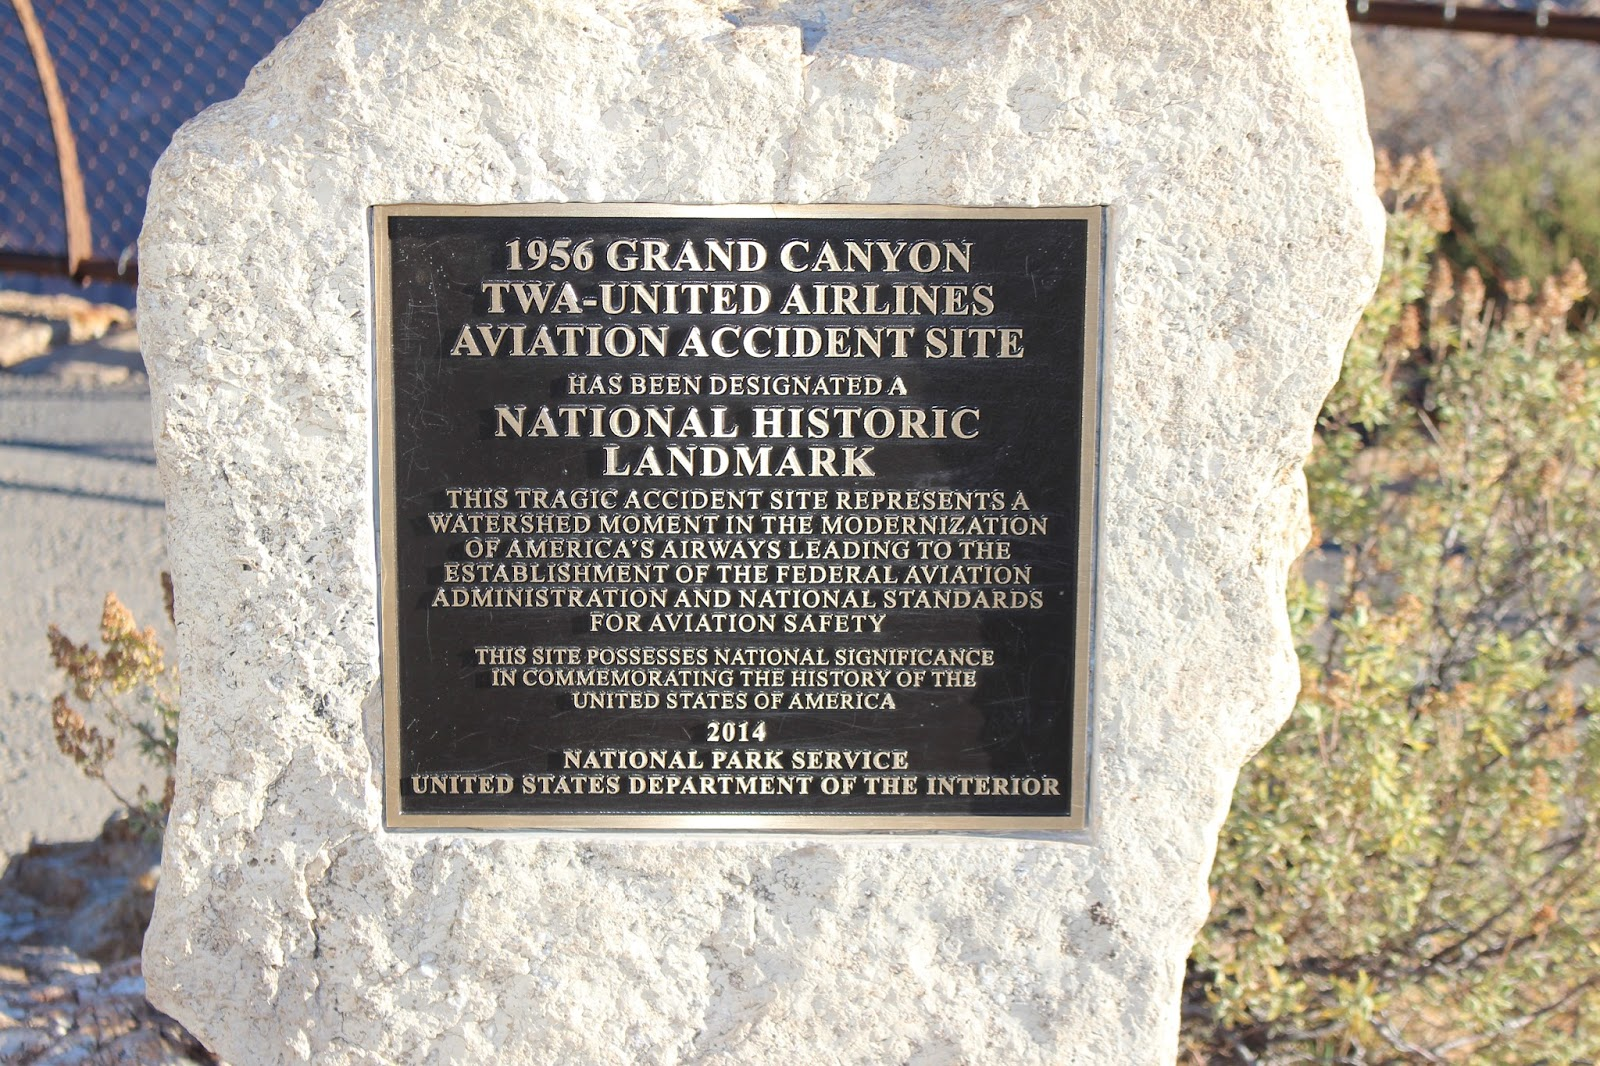 1956 grand canyon collision the creation Media in category 1956 grand canyon mid-air collision the following 8 files are in this category, out of 8 total.